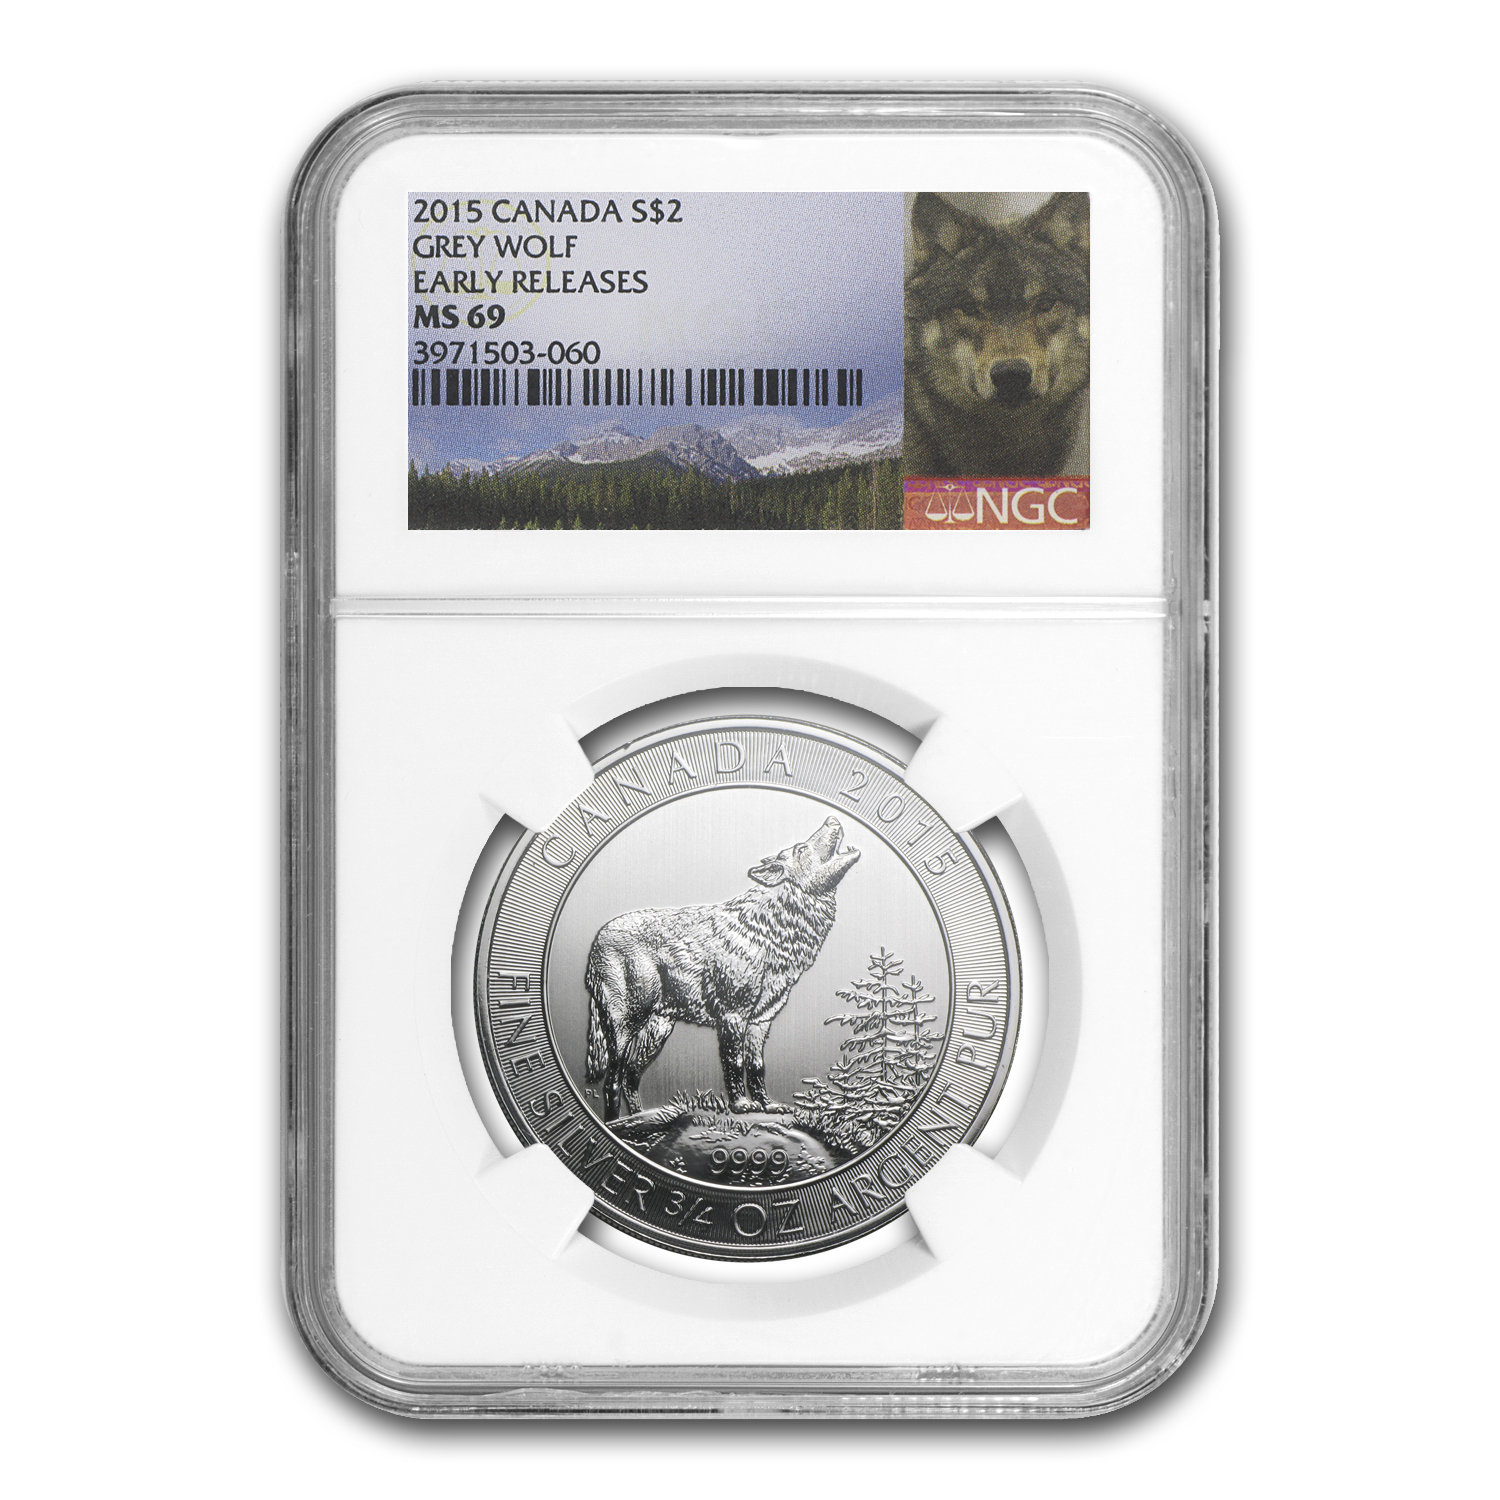 2015 Canada 3/4 oz Silver Grey Wolf MS-69 NGC (Early Release)